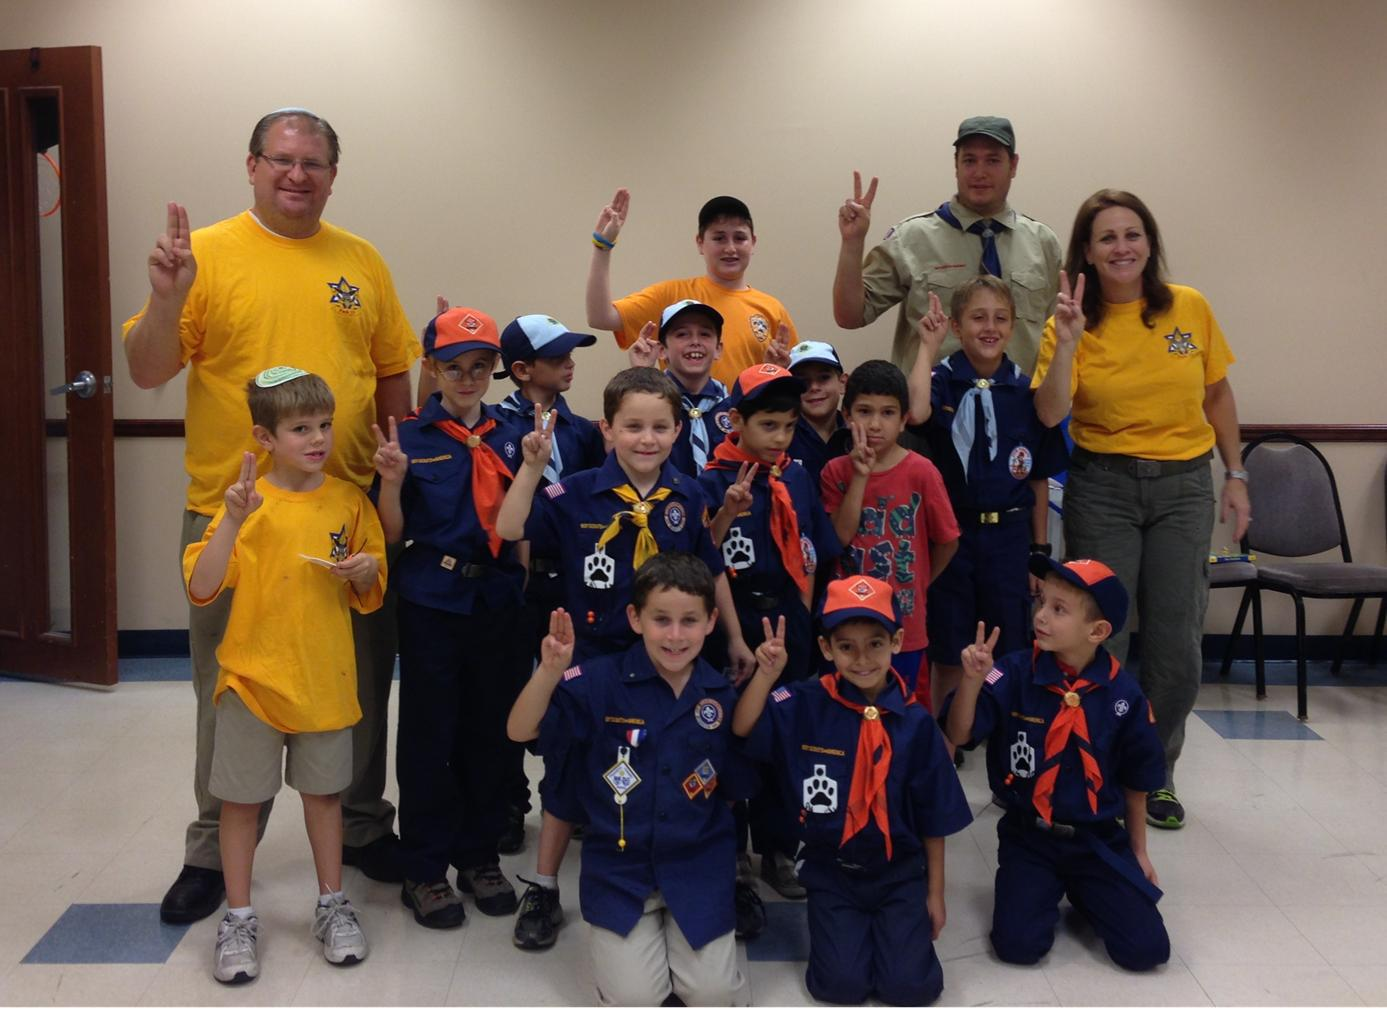 Pack 18 with Group Shot